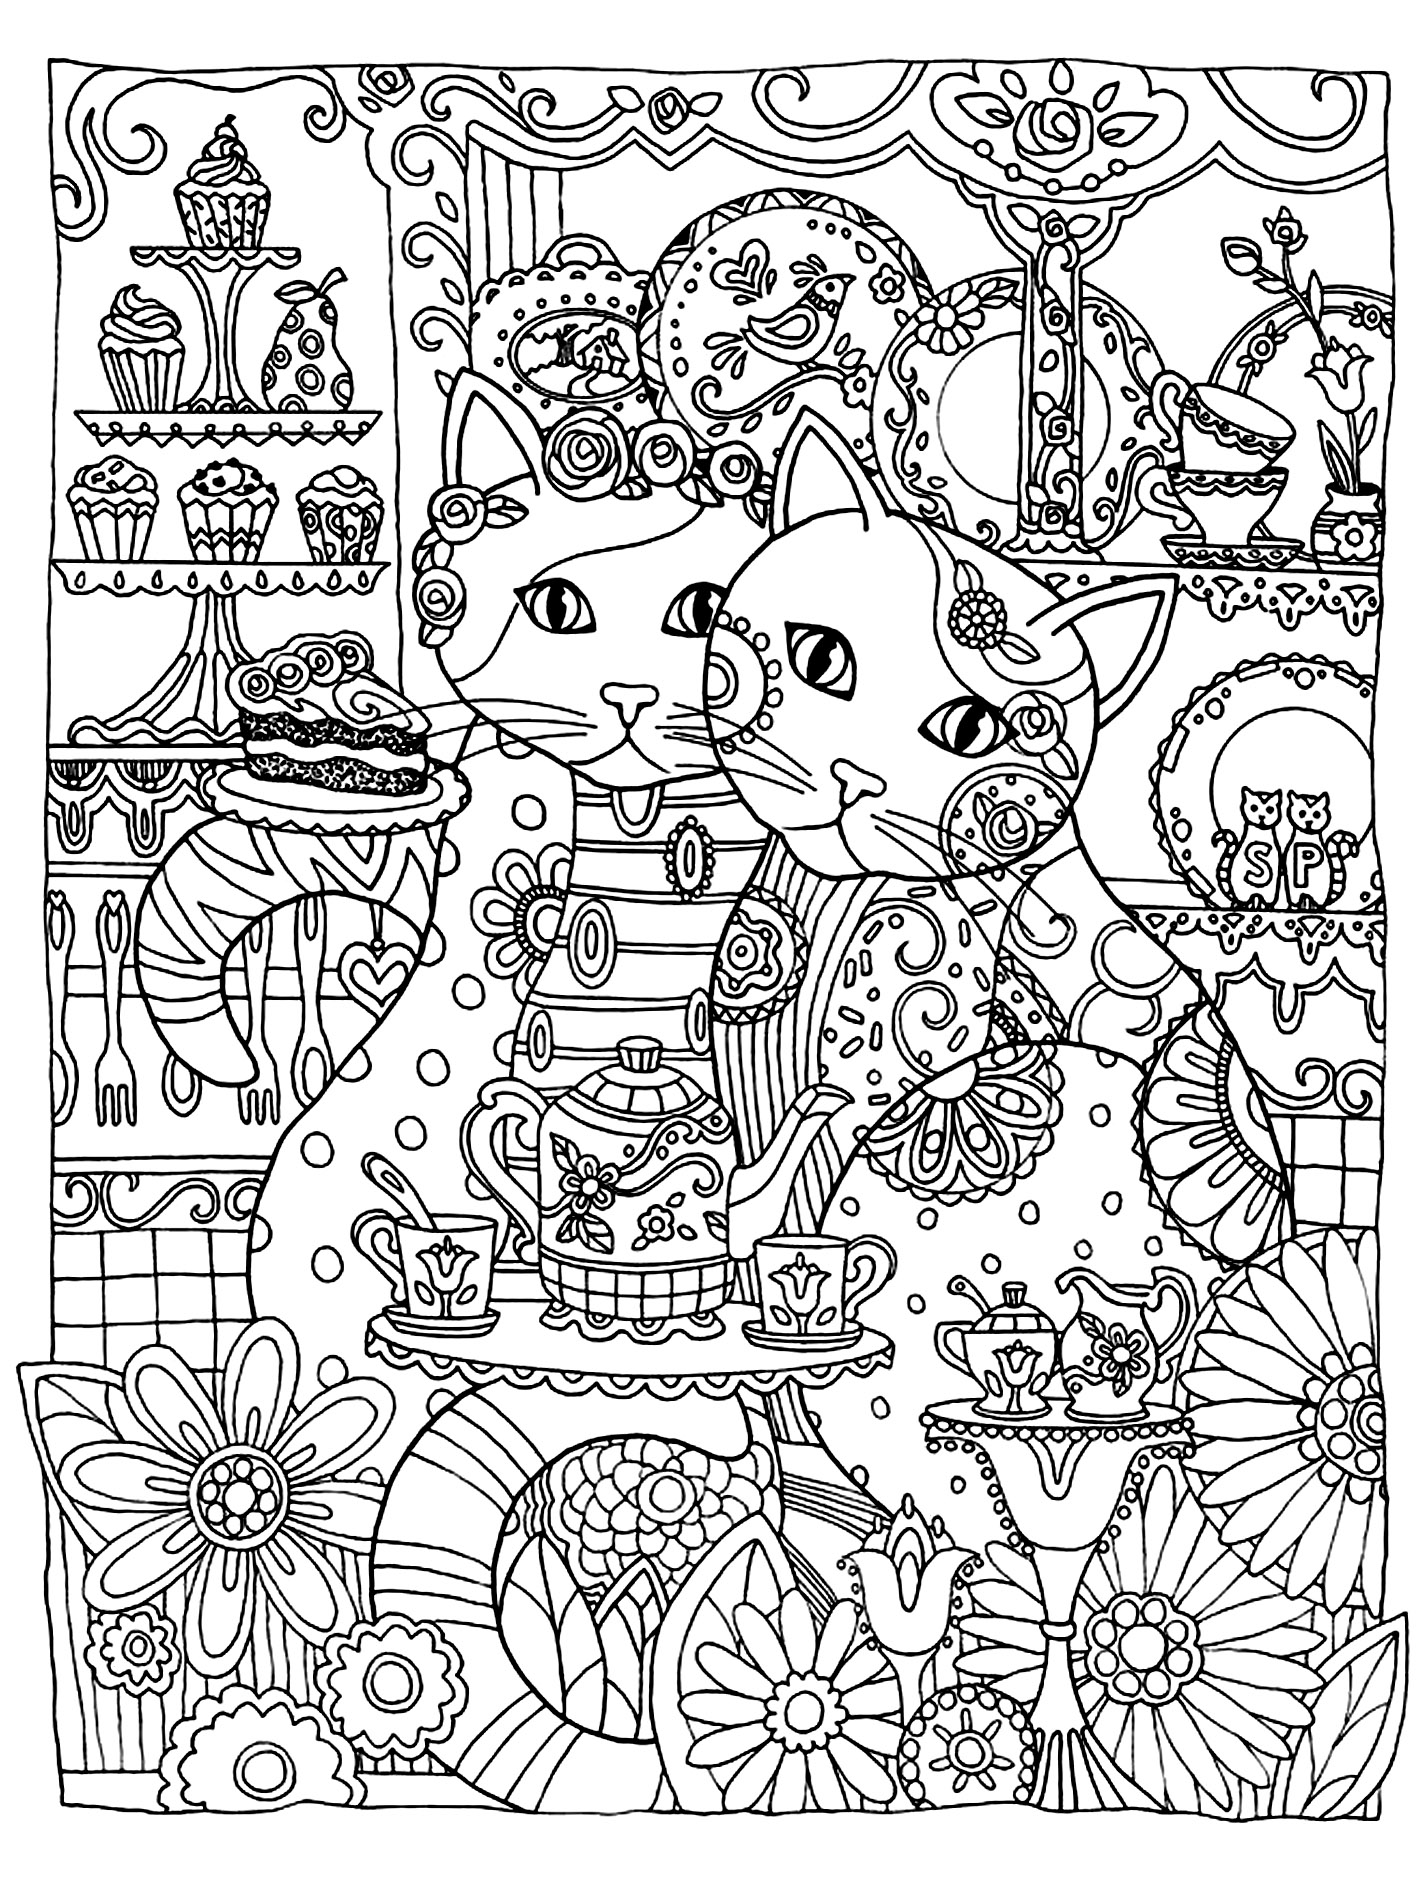 Two loving cats to print & color for free (Source : ©Marjorie Sarnat Dover Publications. All Rights Reserved)